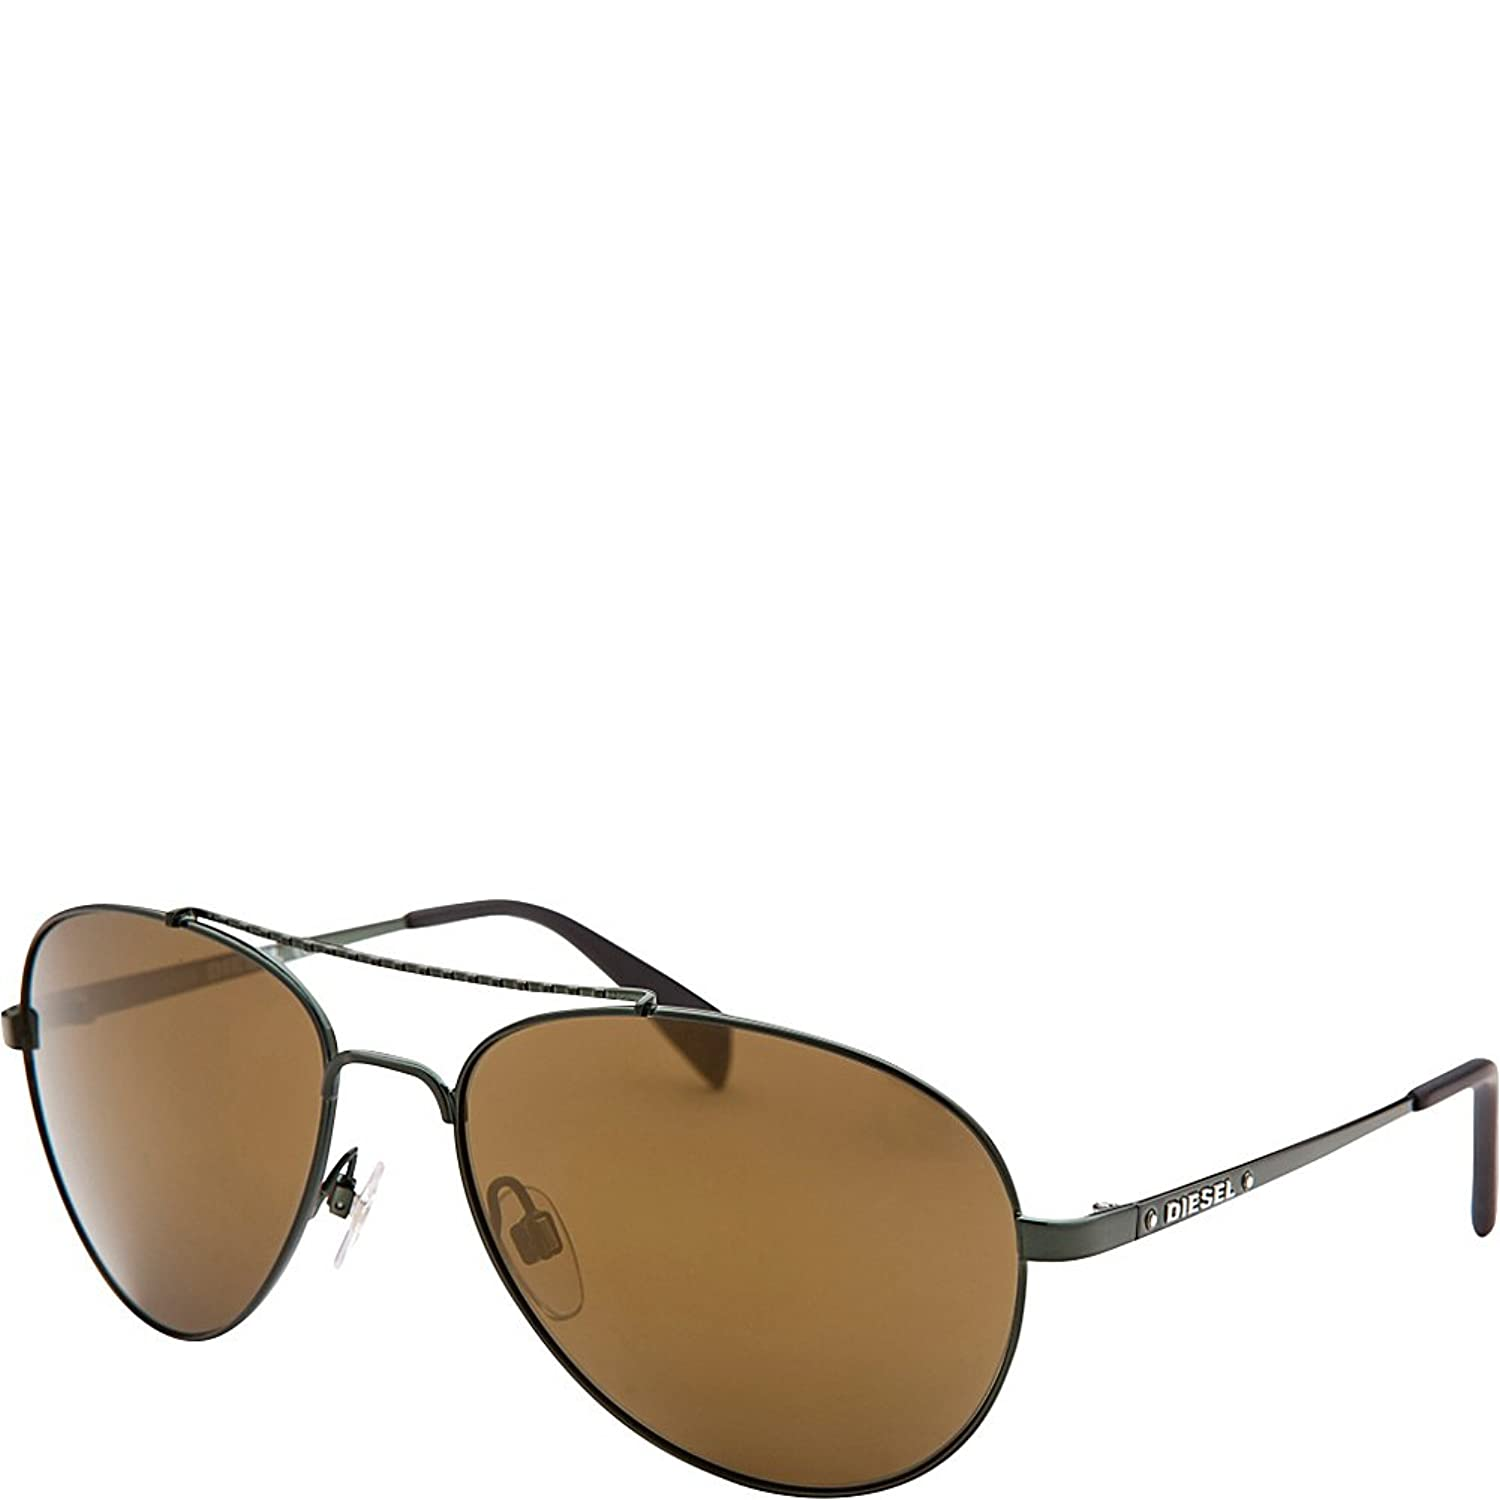 Diesel Eyewear Aviator Sunglasses (Green)